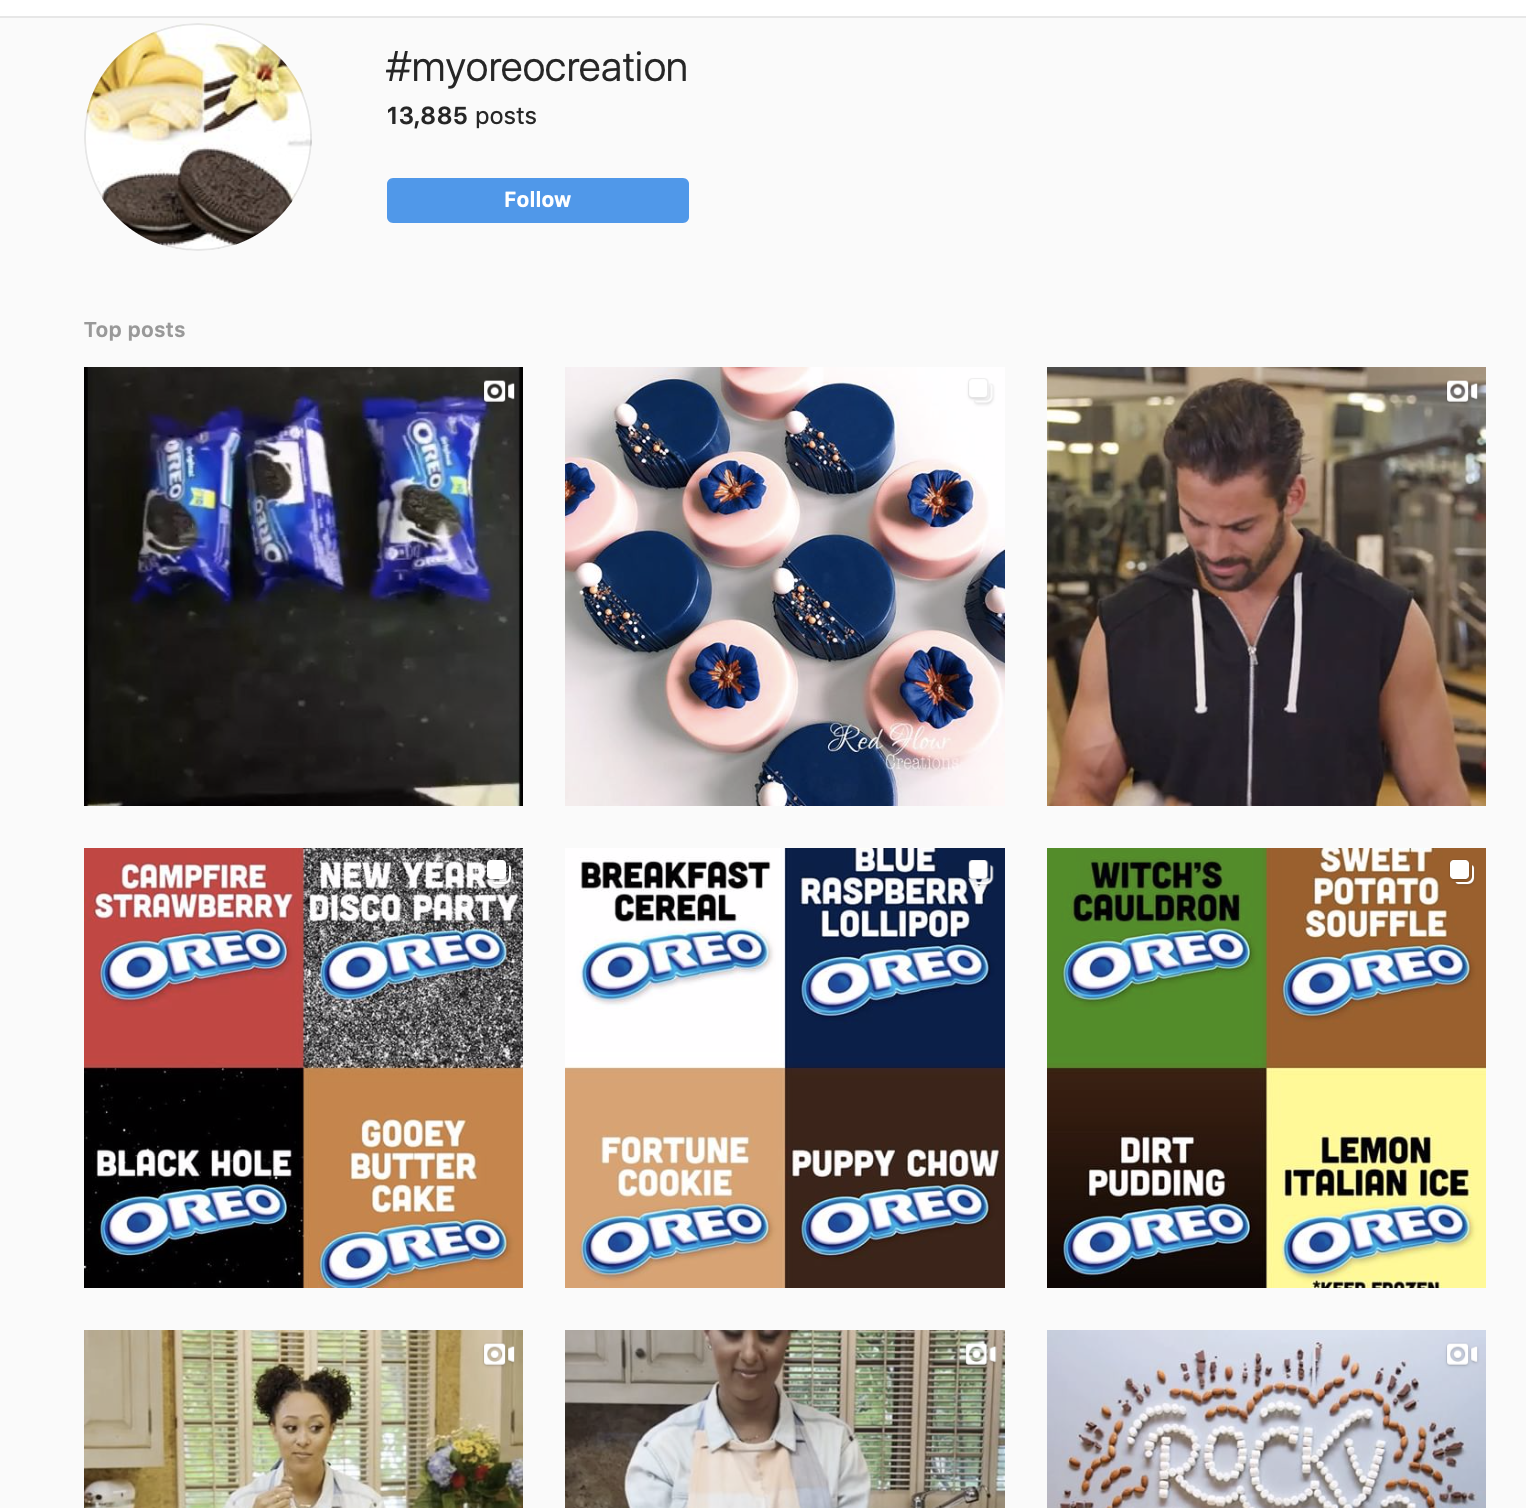 Brand Video Breakdown: How Oreo Uses Bursts of Short Social Videos To Keep Their Audience Engaged